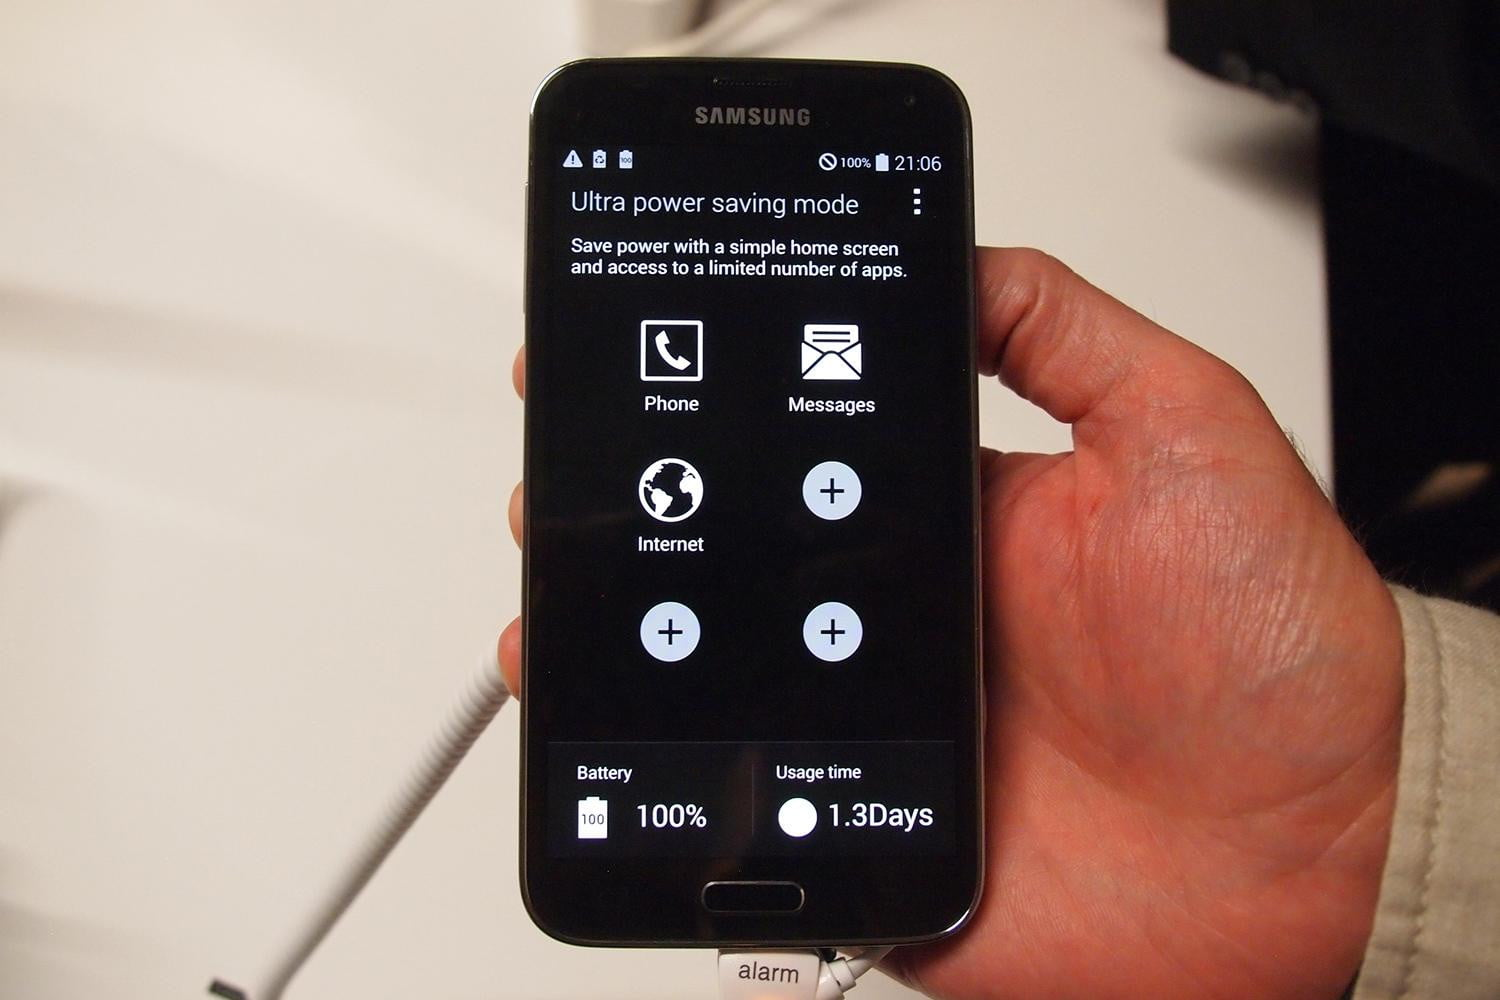 Galaxy S5 | 27 Common Problems Users Have, How to Fix